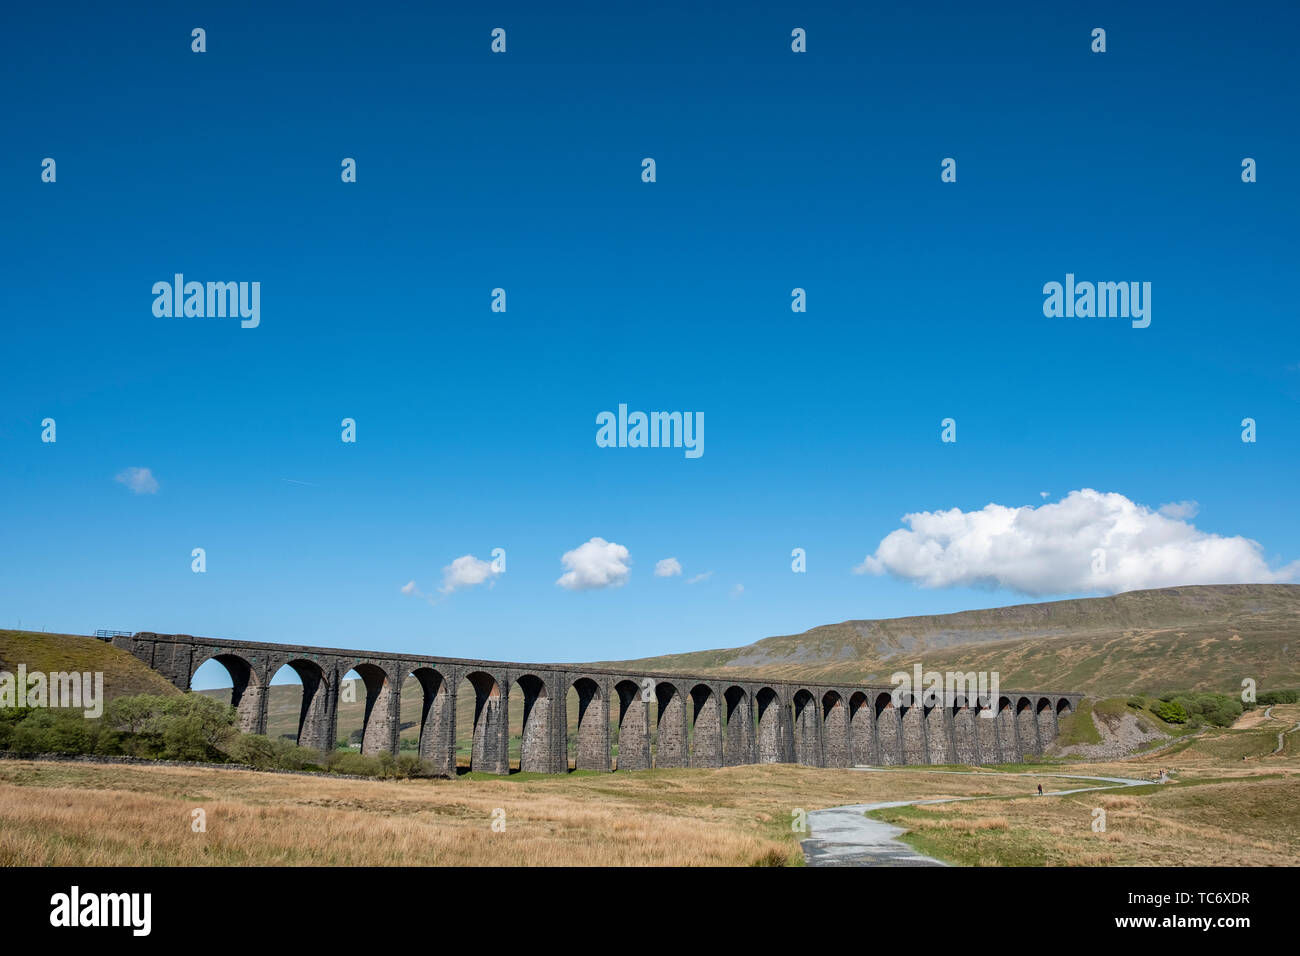 Ribble Head Viaduct in The Yorkshire Dales National Park. England, UK - Stock Image